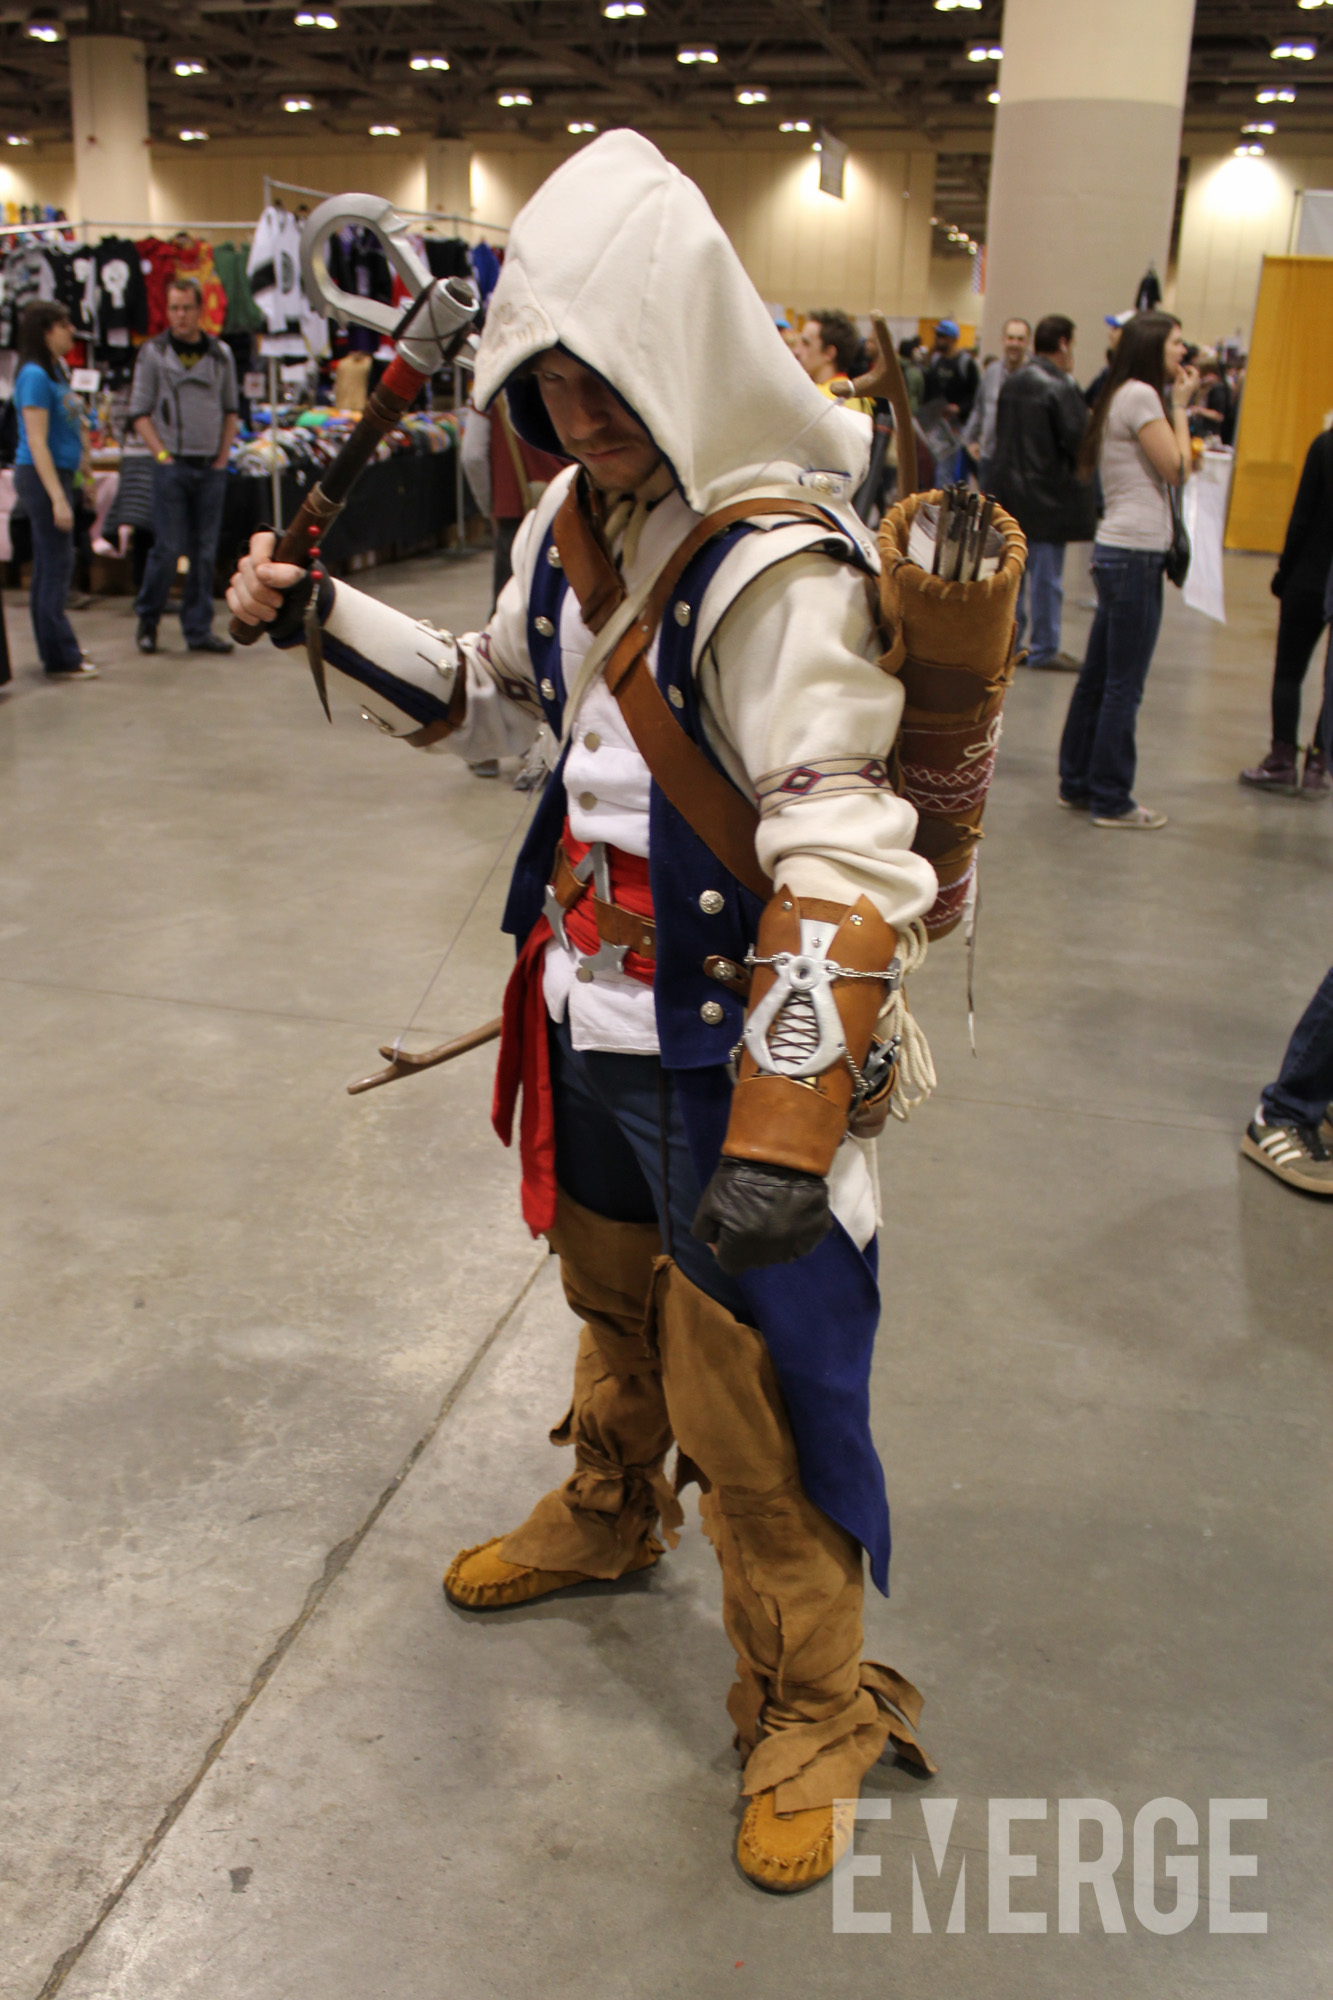 Connor from Assassins Creed 3 with one of the most impressive costumes of the show